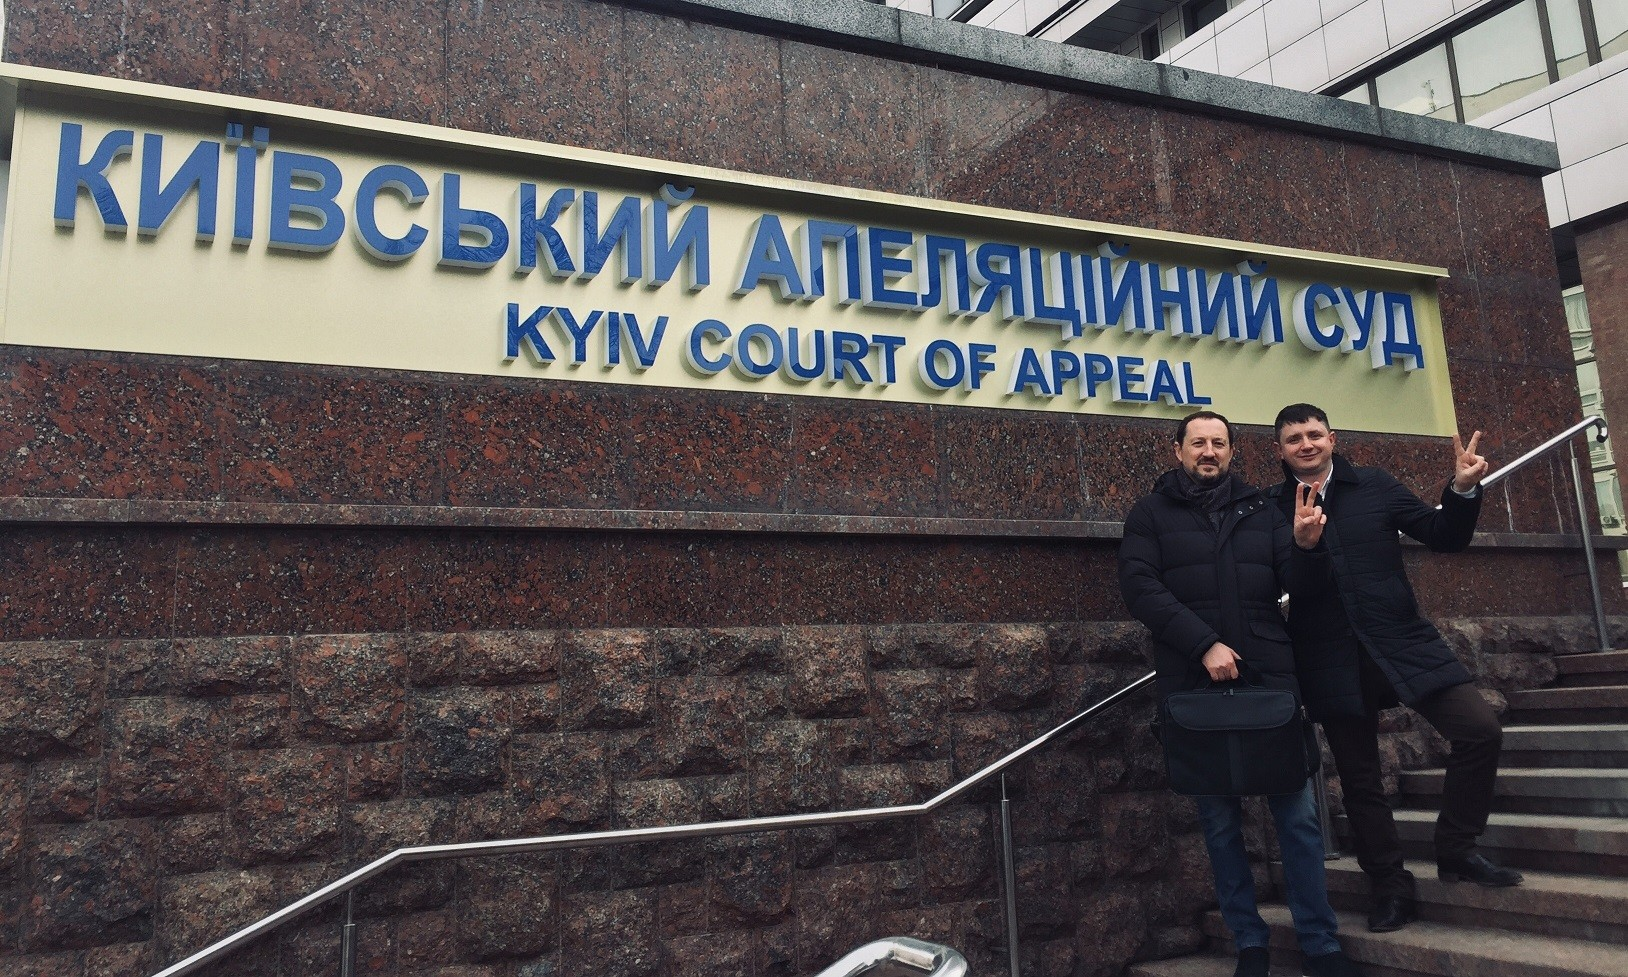 THE MOLDOVAN OPPOSITIONIST IS RELEASED FROM CUSTODY